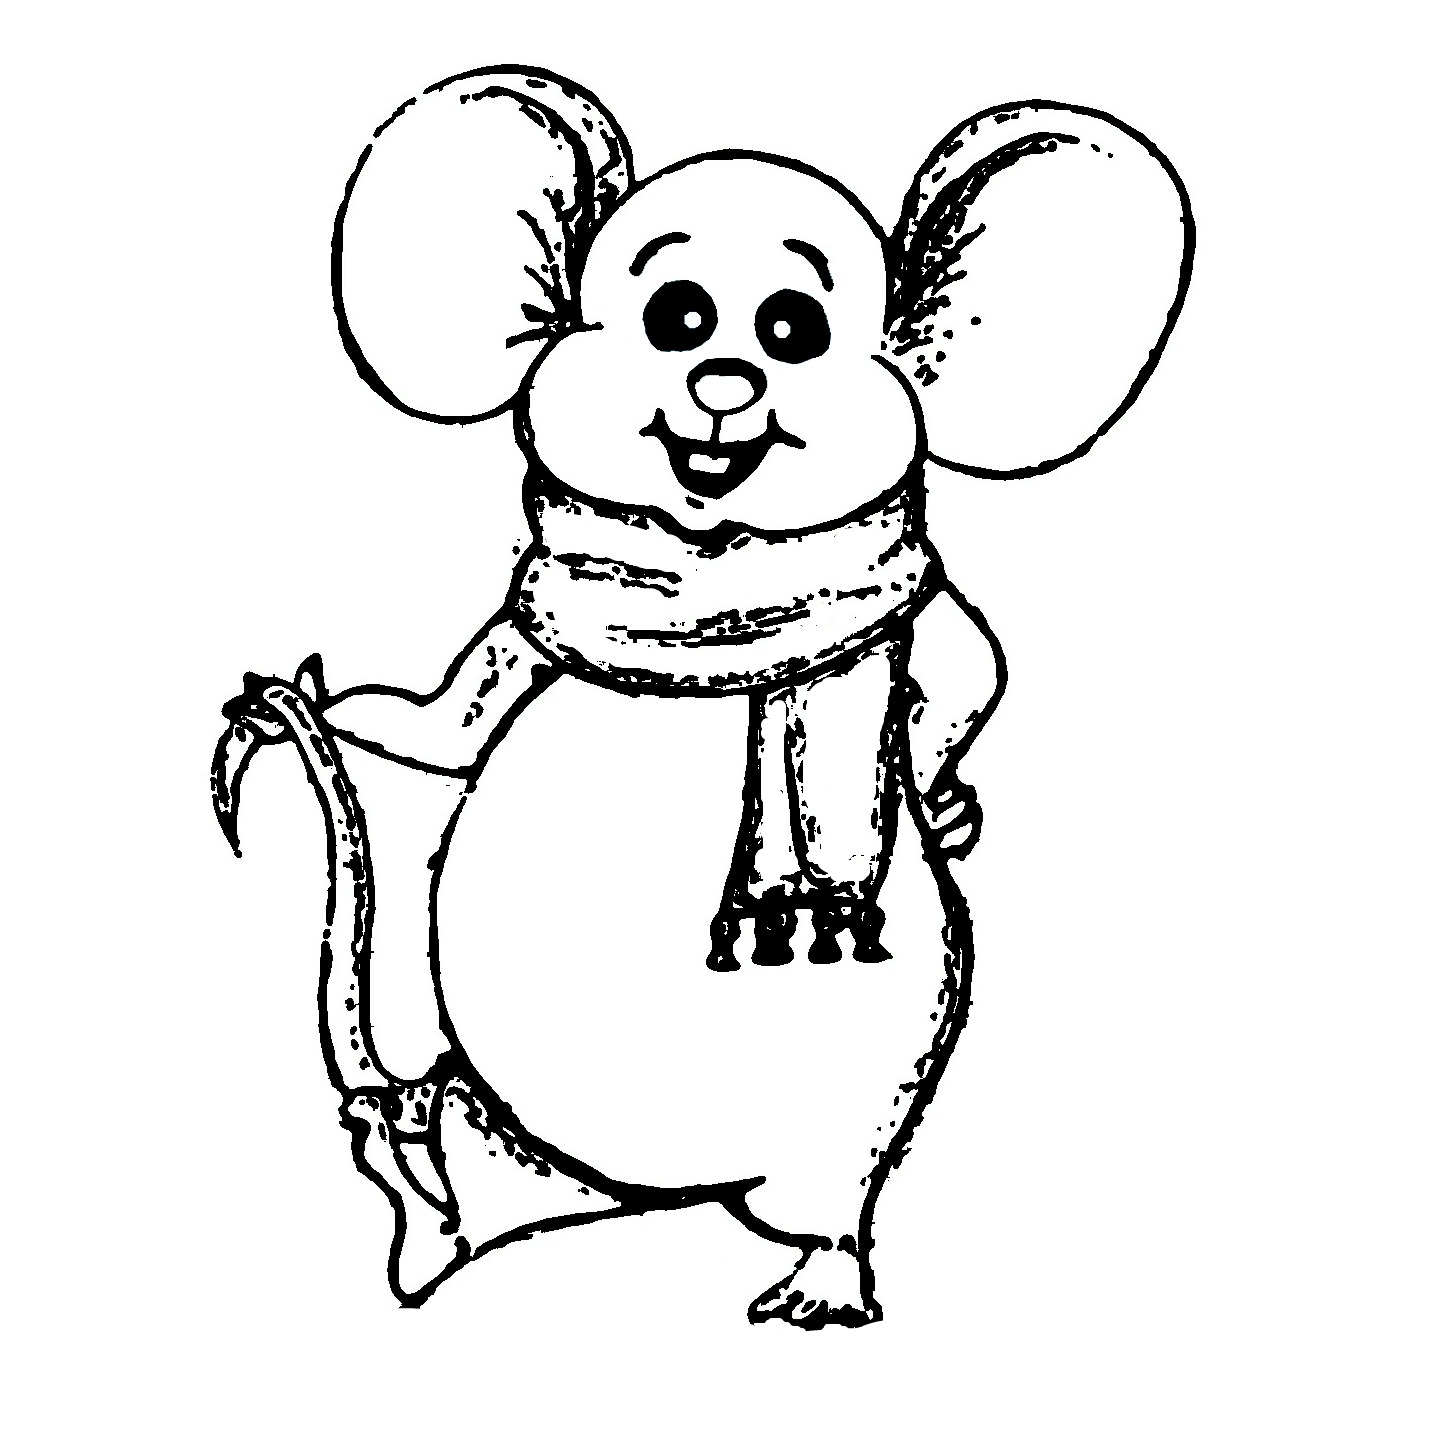 Merry%bmouse%bcoloring%bpage